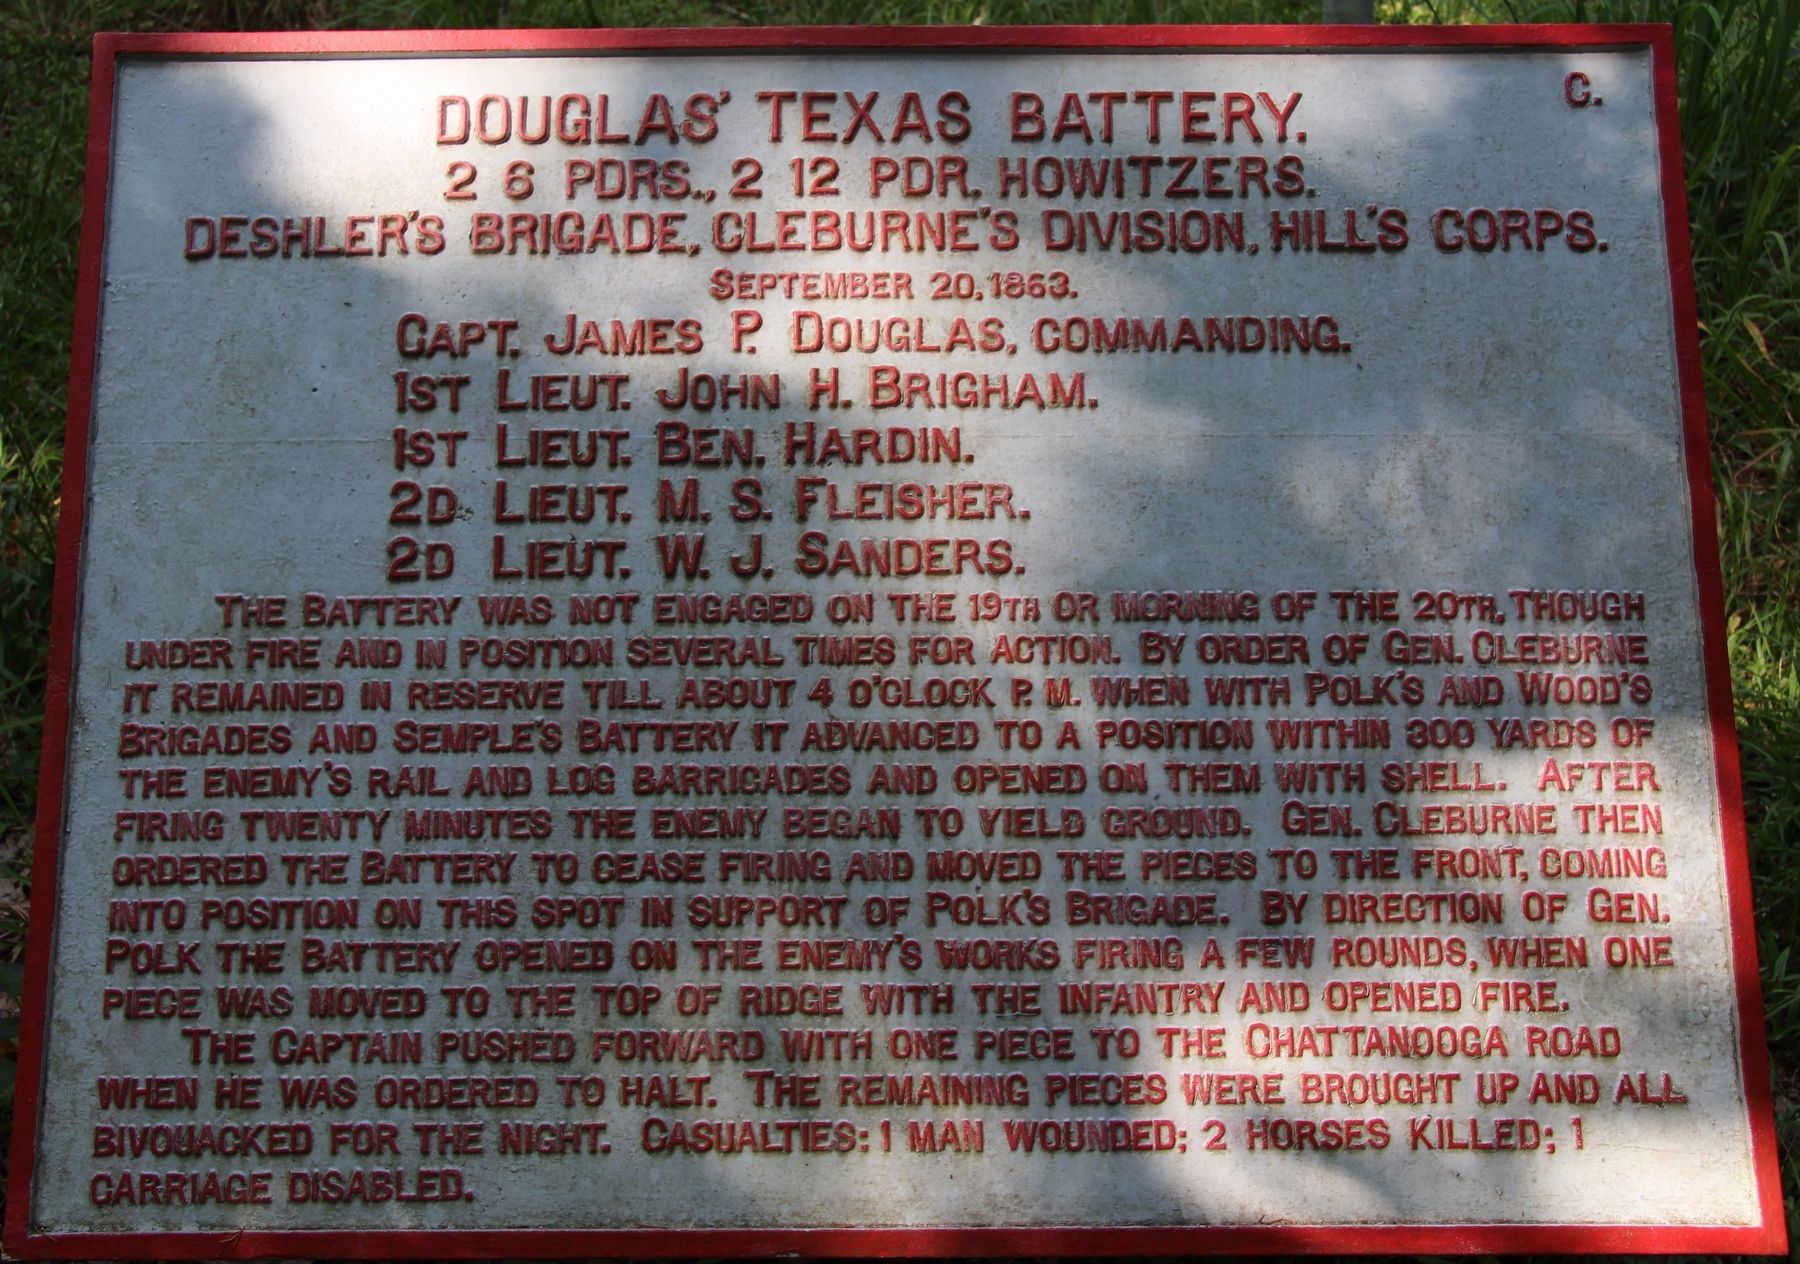 Photo by By Dale K. Benington, July 12, 2017, retrieved from: https://www.hmdb.org/PhotoFullSize.asp?PhotoID=393262